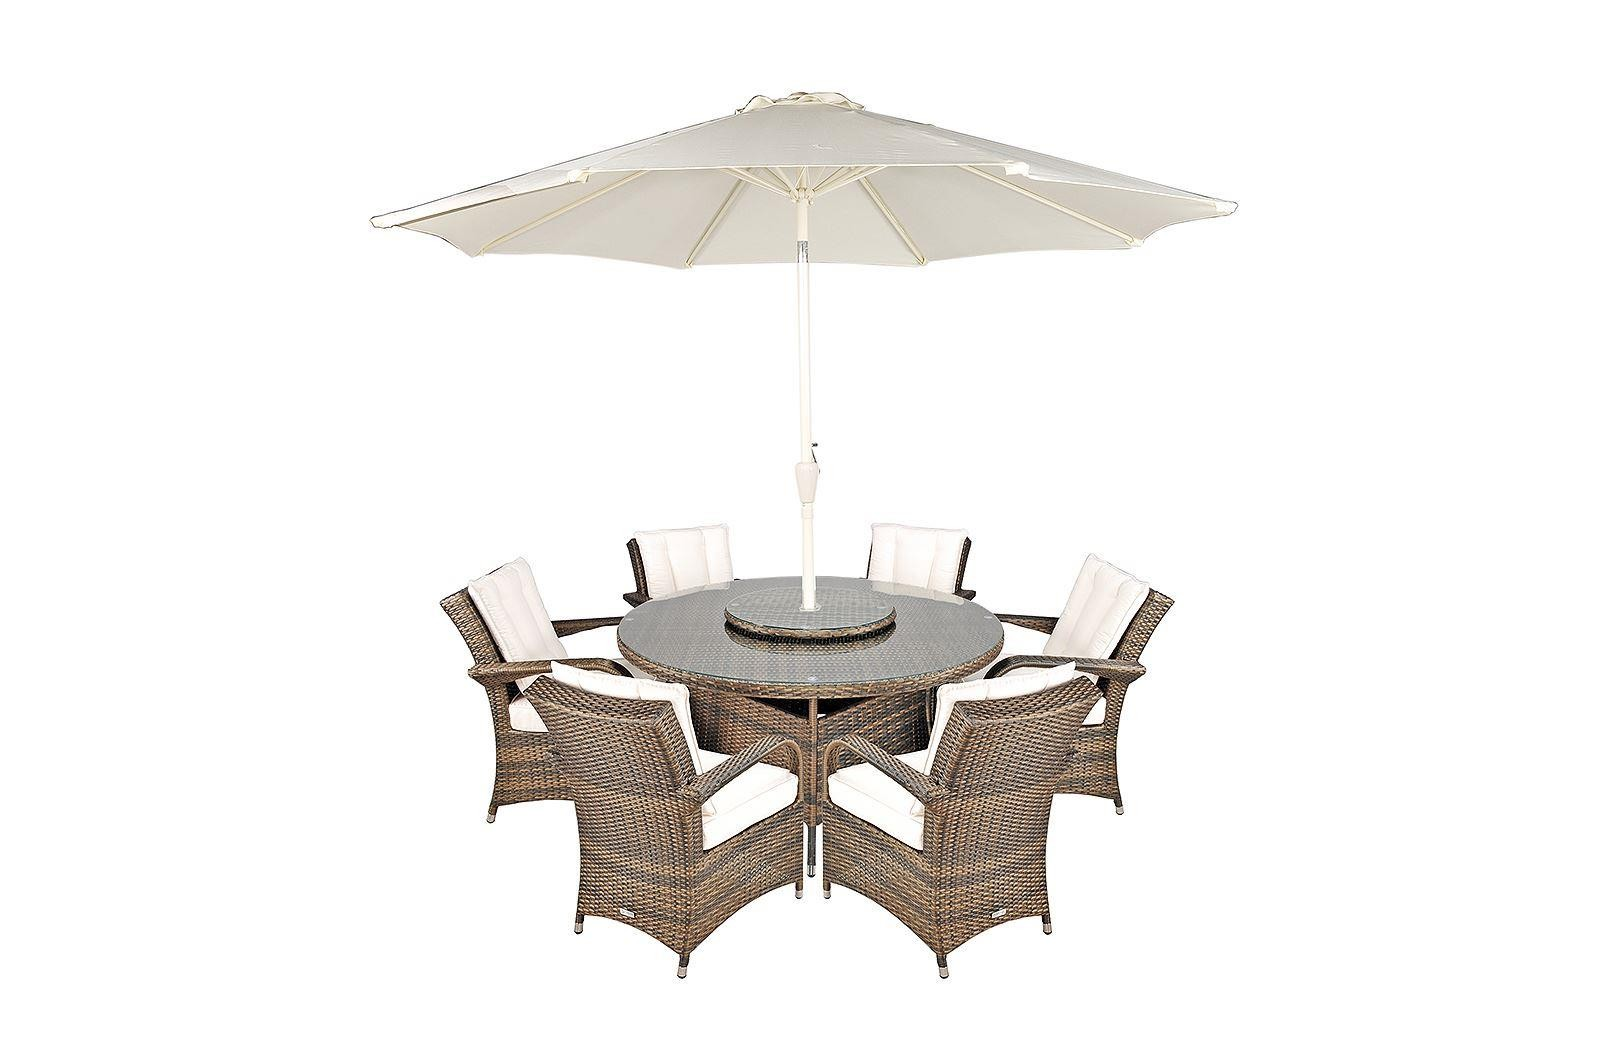 Arizona Rattan Garden Furniture [6 Seat Dining Set with Round Table]